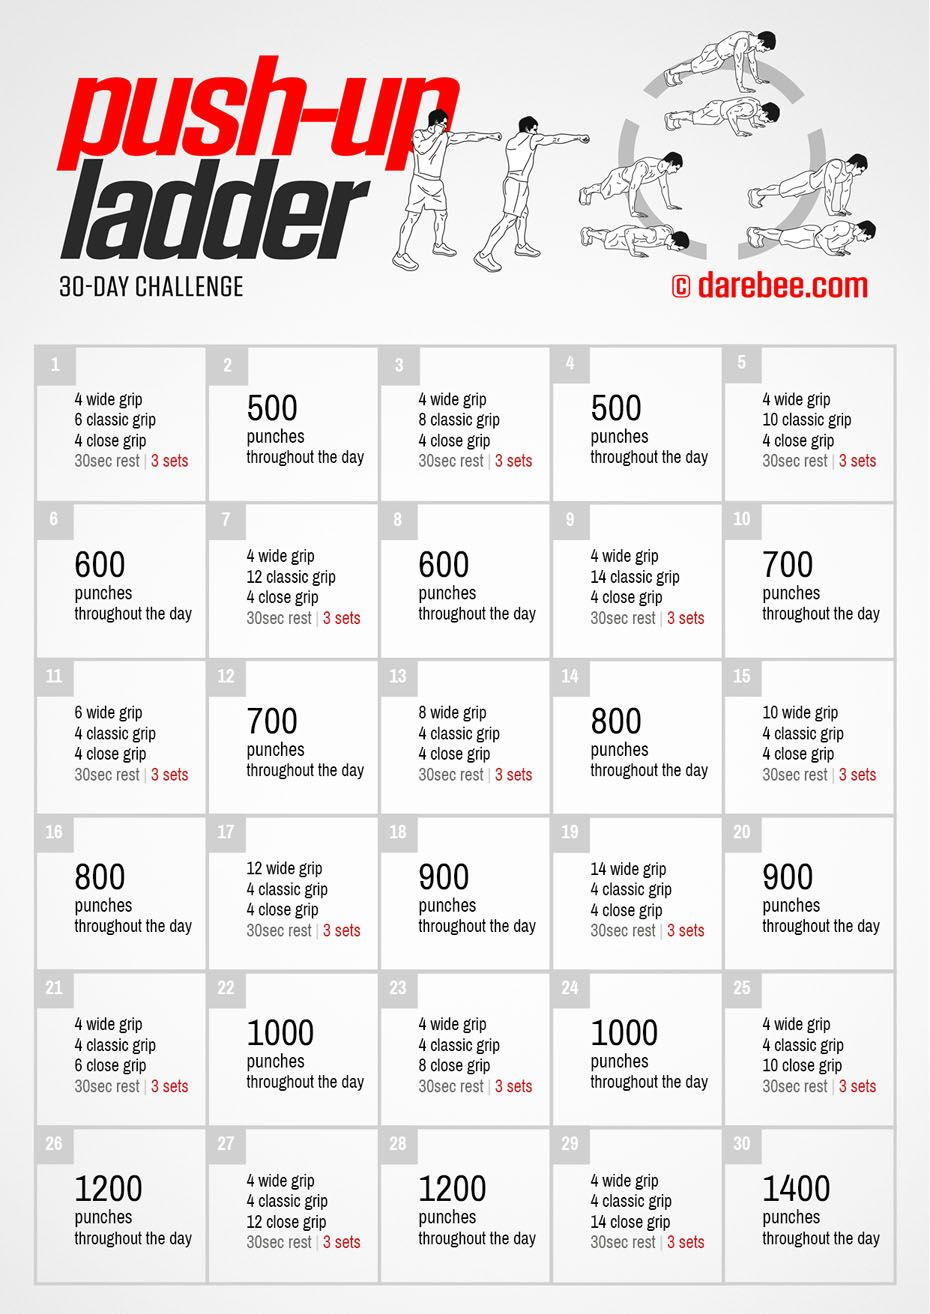 30 Day Push Up Ladder Challenge By DAREBEE